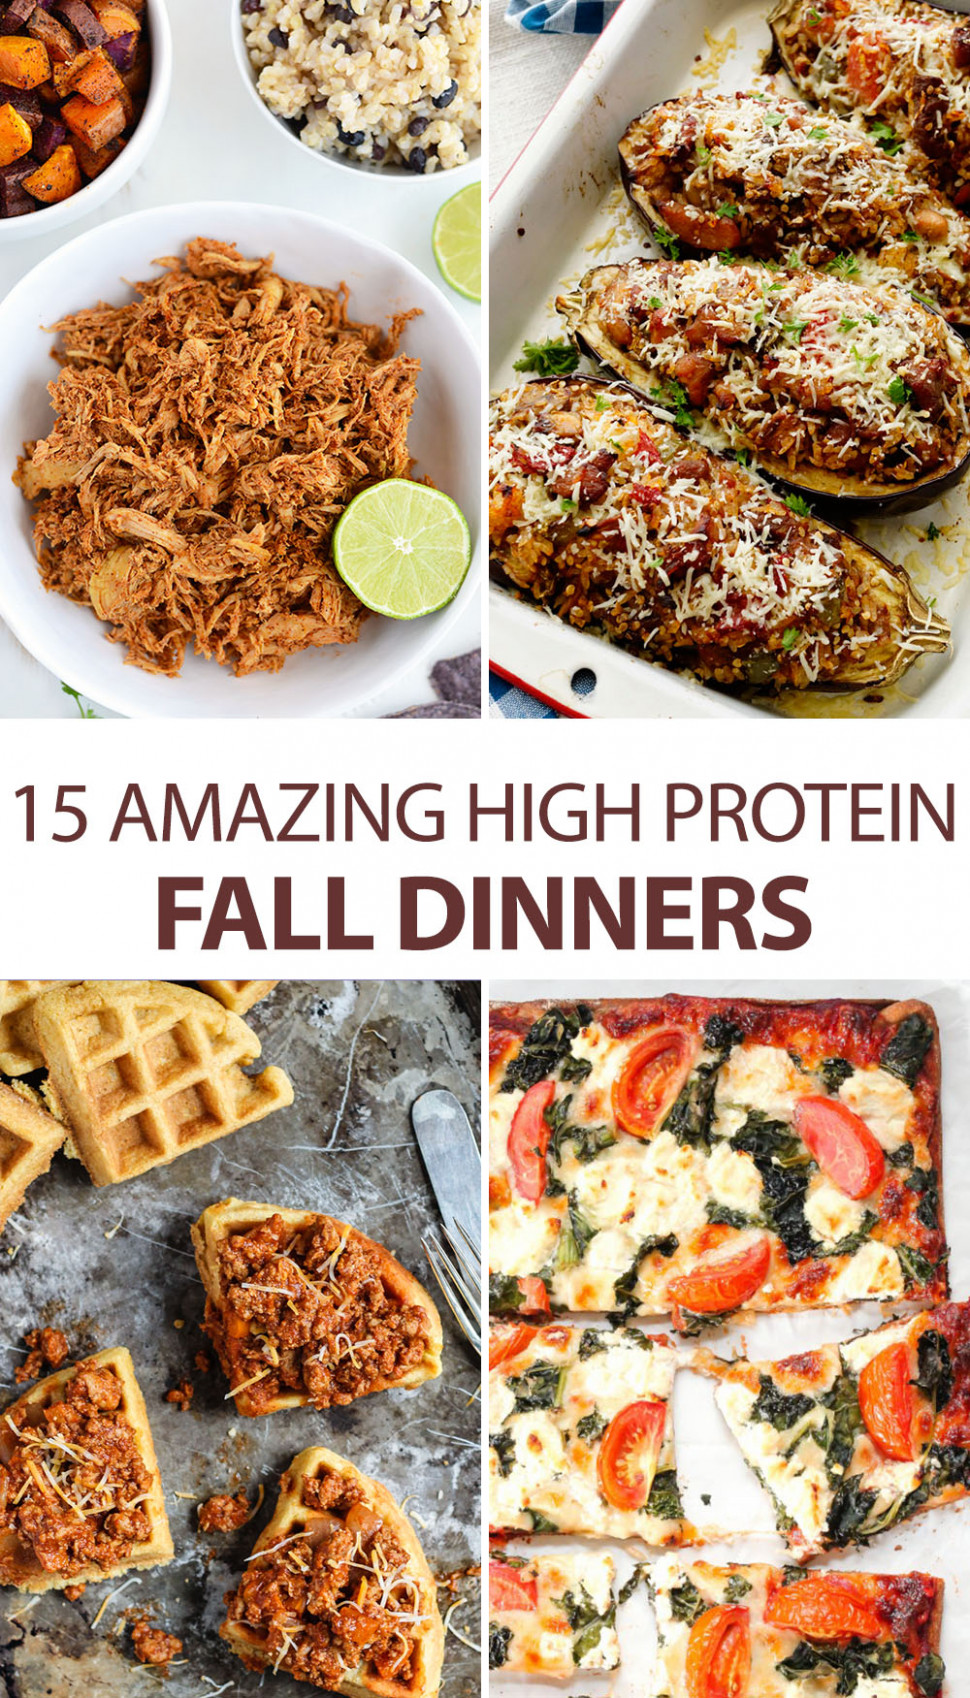 13 Amazing High Protein Fall Dinners - dinner recipes high in protein